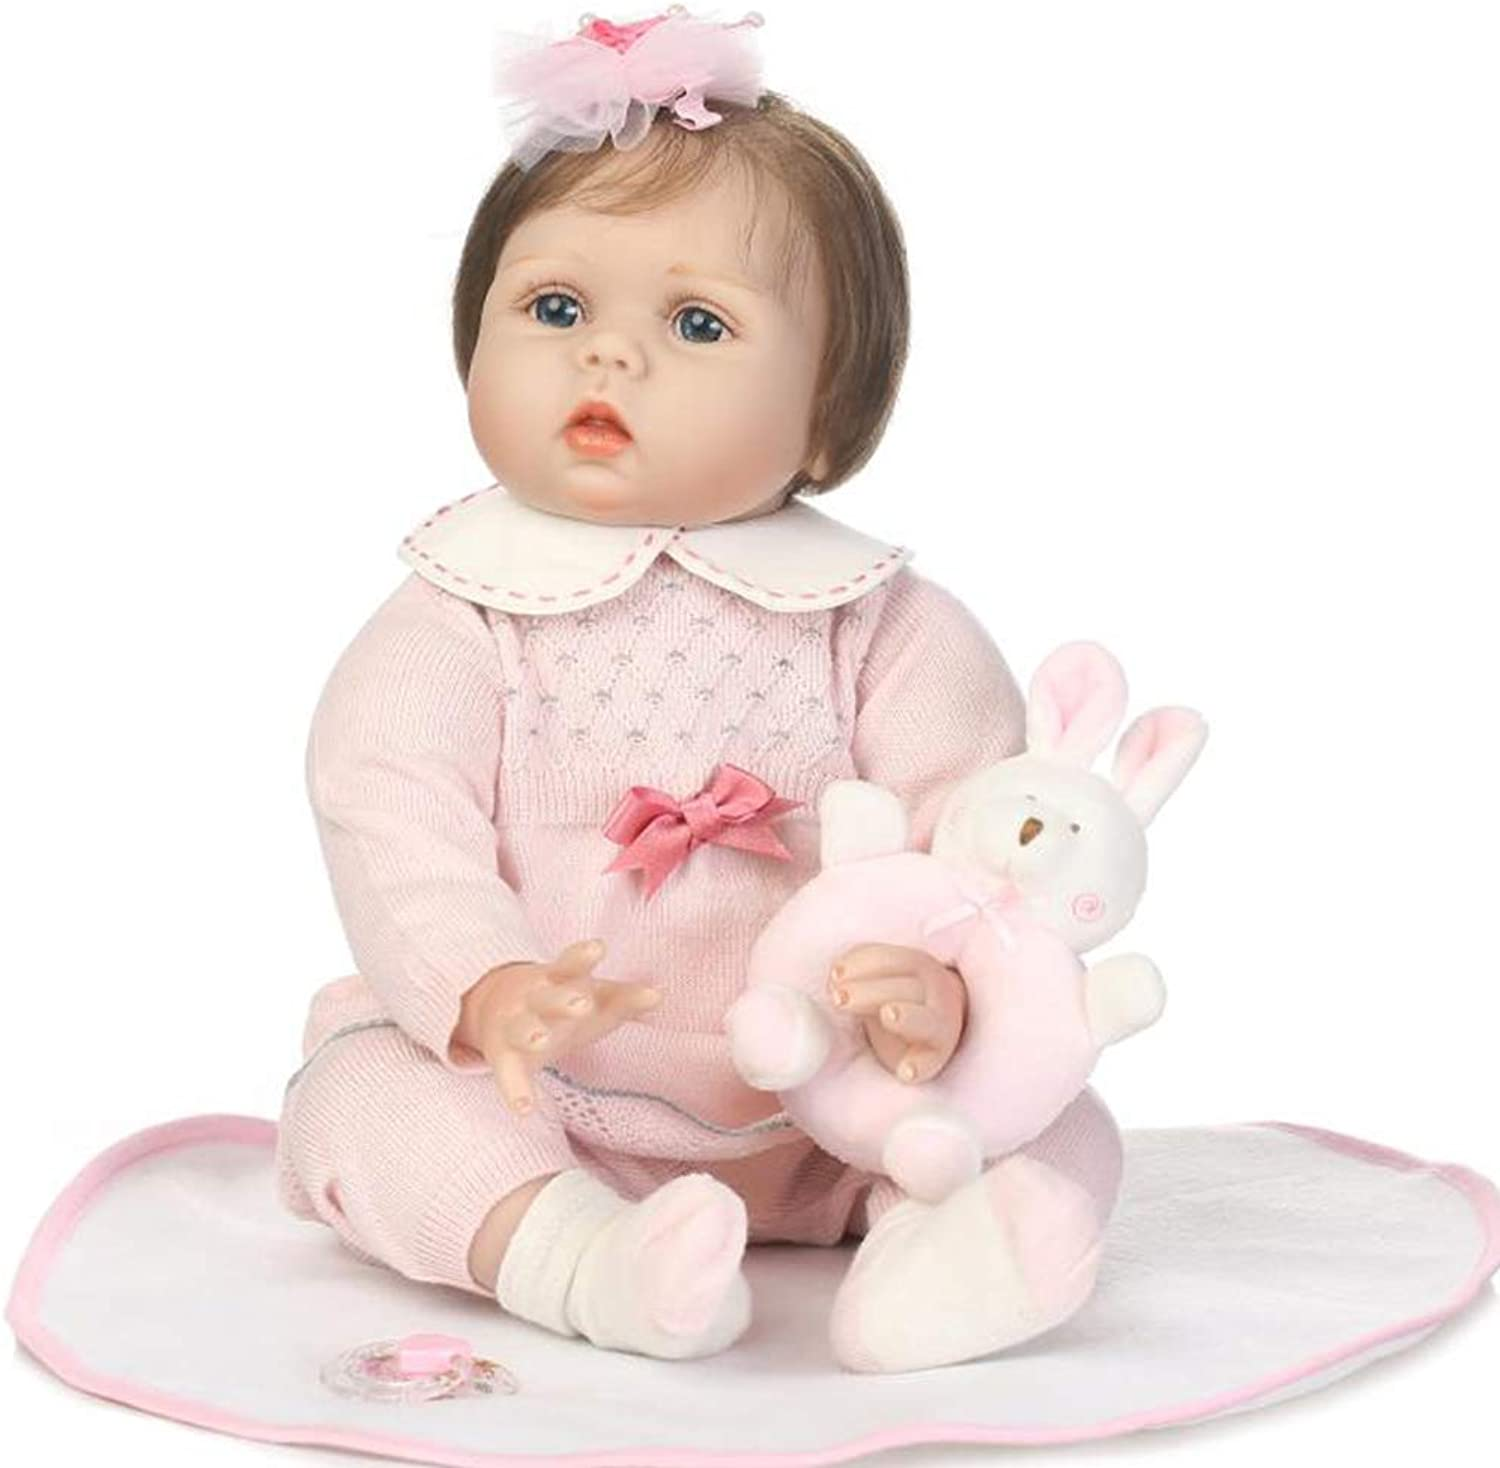 ZIYIUI 22  Reborn Baby Dolls Soft Silicone Vinyl Lifelike Baby Doll Boy and Girl Toys Reborn Dolls Free Magnet Pacifier Best Gift for Xmas